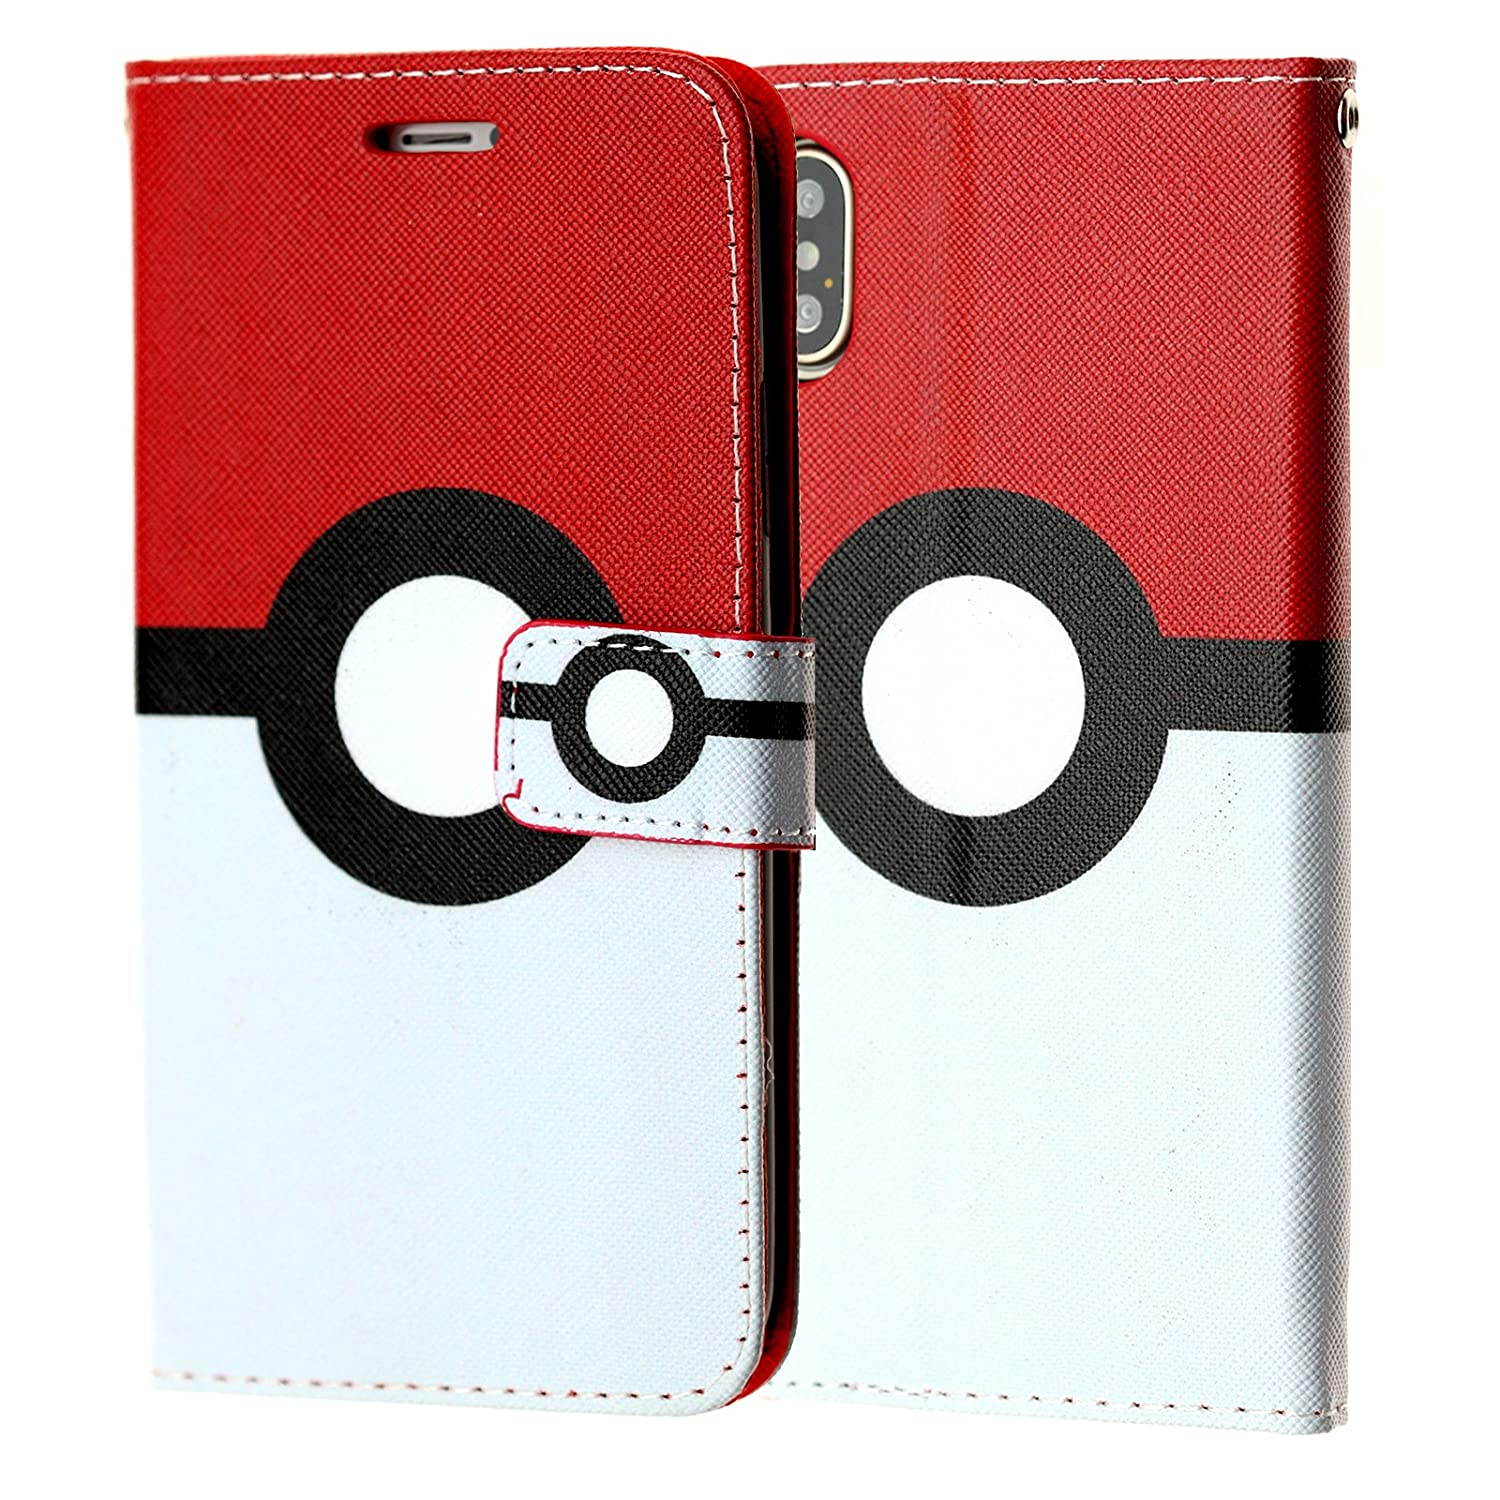 on sale 899f5 42e1a Iphone X Wallet Case, DURARMOR Iphone X Pokemon Poke Ball PU Leather Folio  Wallet with ID, Credit Card, Cash Slots Flip Stand Cover Protector Carrying  ...